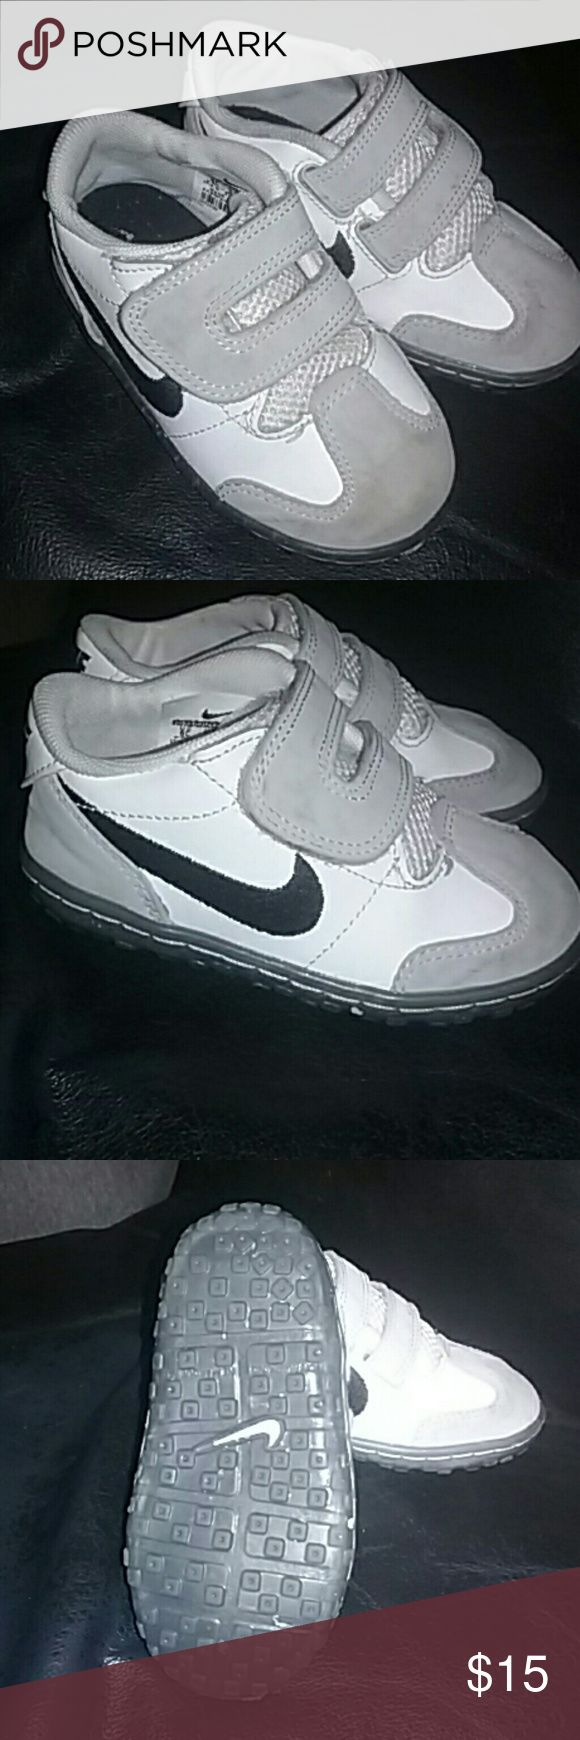 Infant Boy's Nike Shoes Size 6 Gray and white Nike shoes, infant size 6. Velcro closure. GUC Nike Shoes Baby & Walker